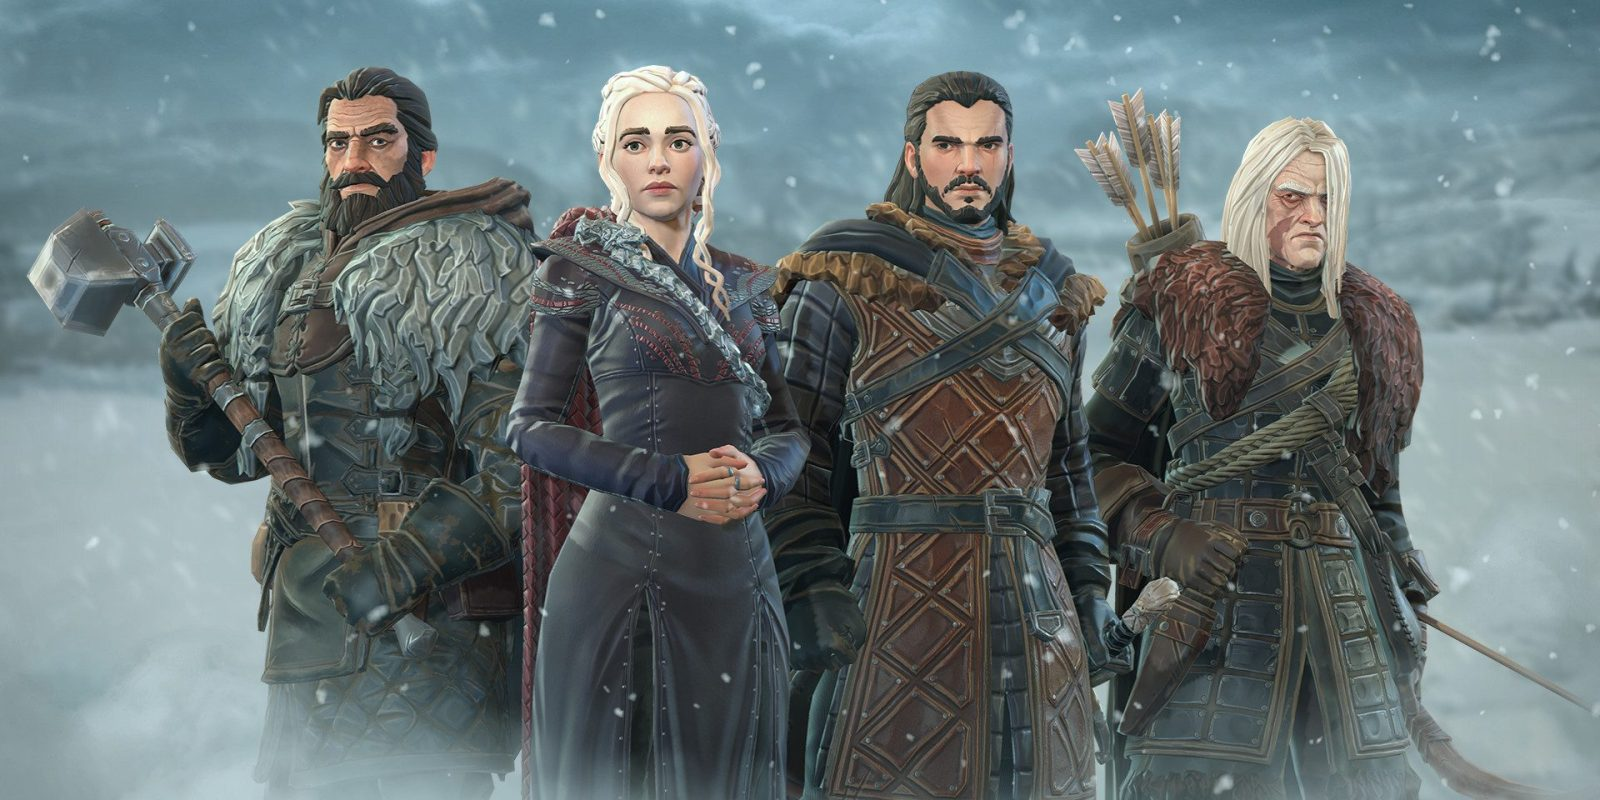 New Game of Thrones Beyond the Wall RPG hits this year on iOS/Android